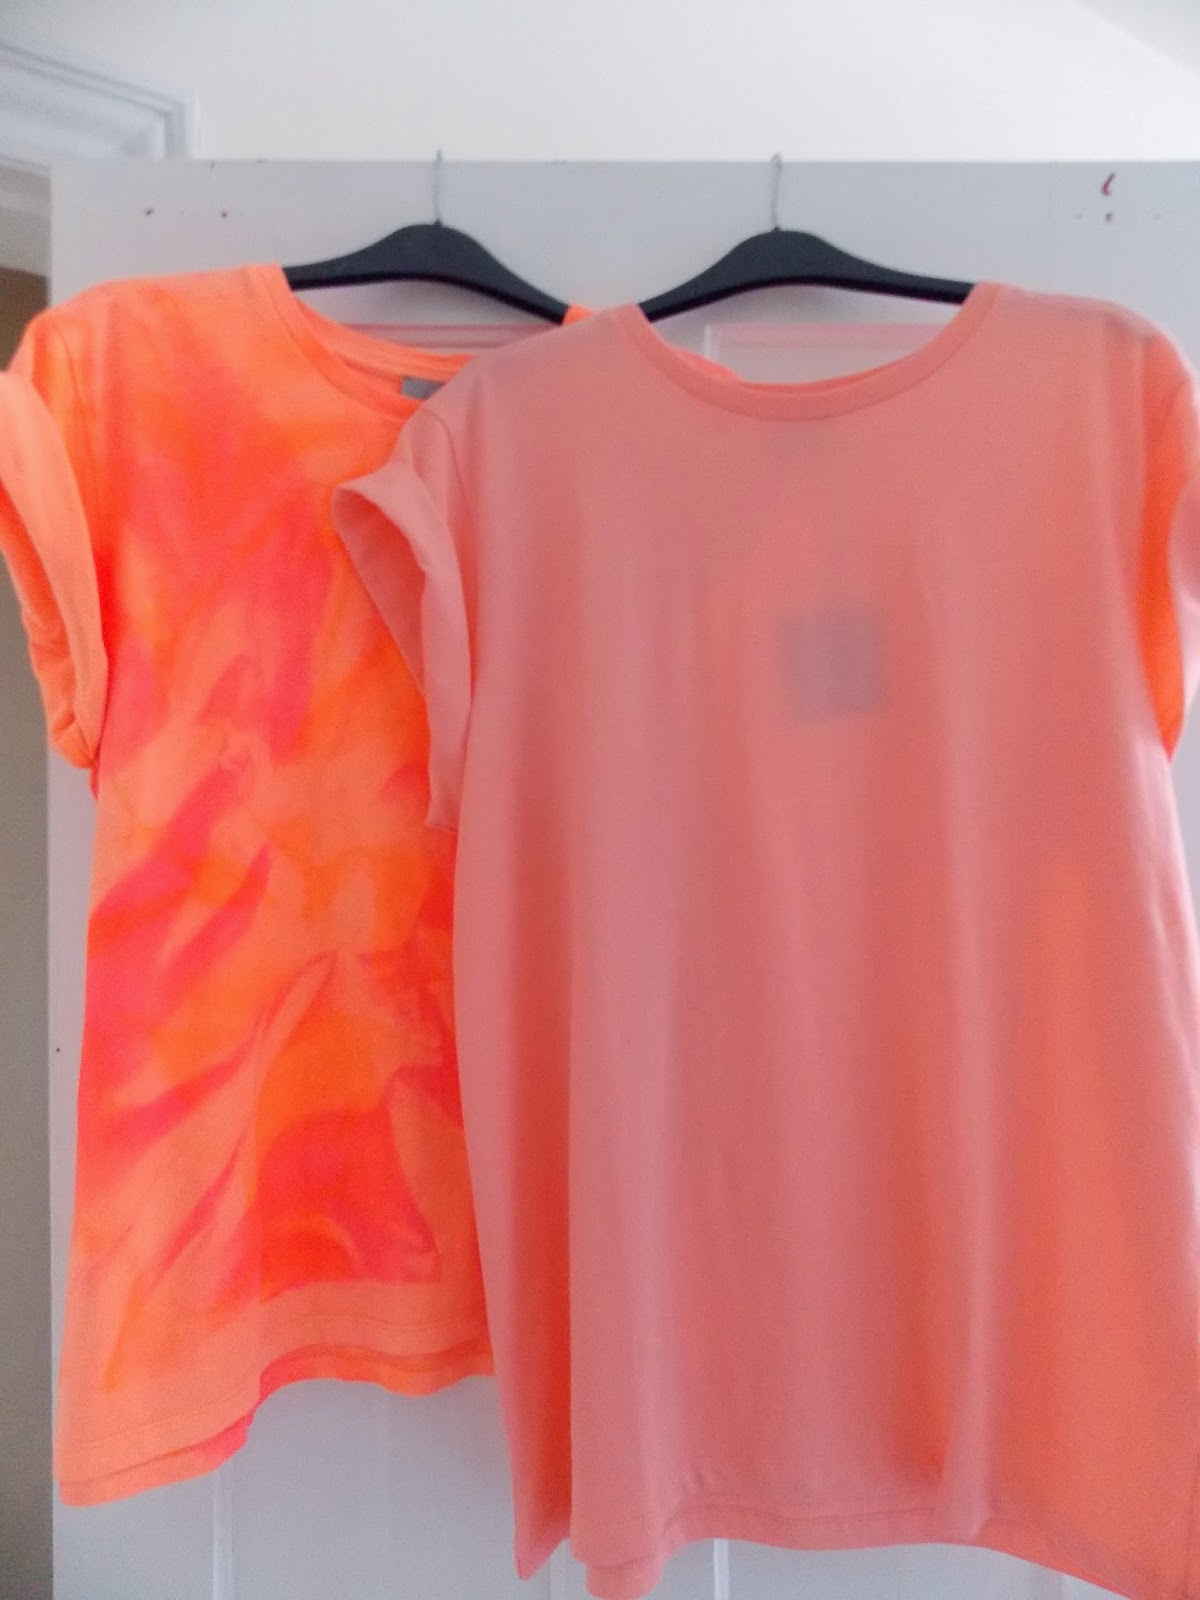 ASOS Boyfriend Tee in Fluro Tie Dye Print and ASOS Boyfriend Tee with Roll Sleeve